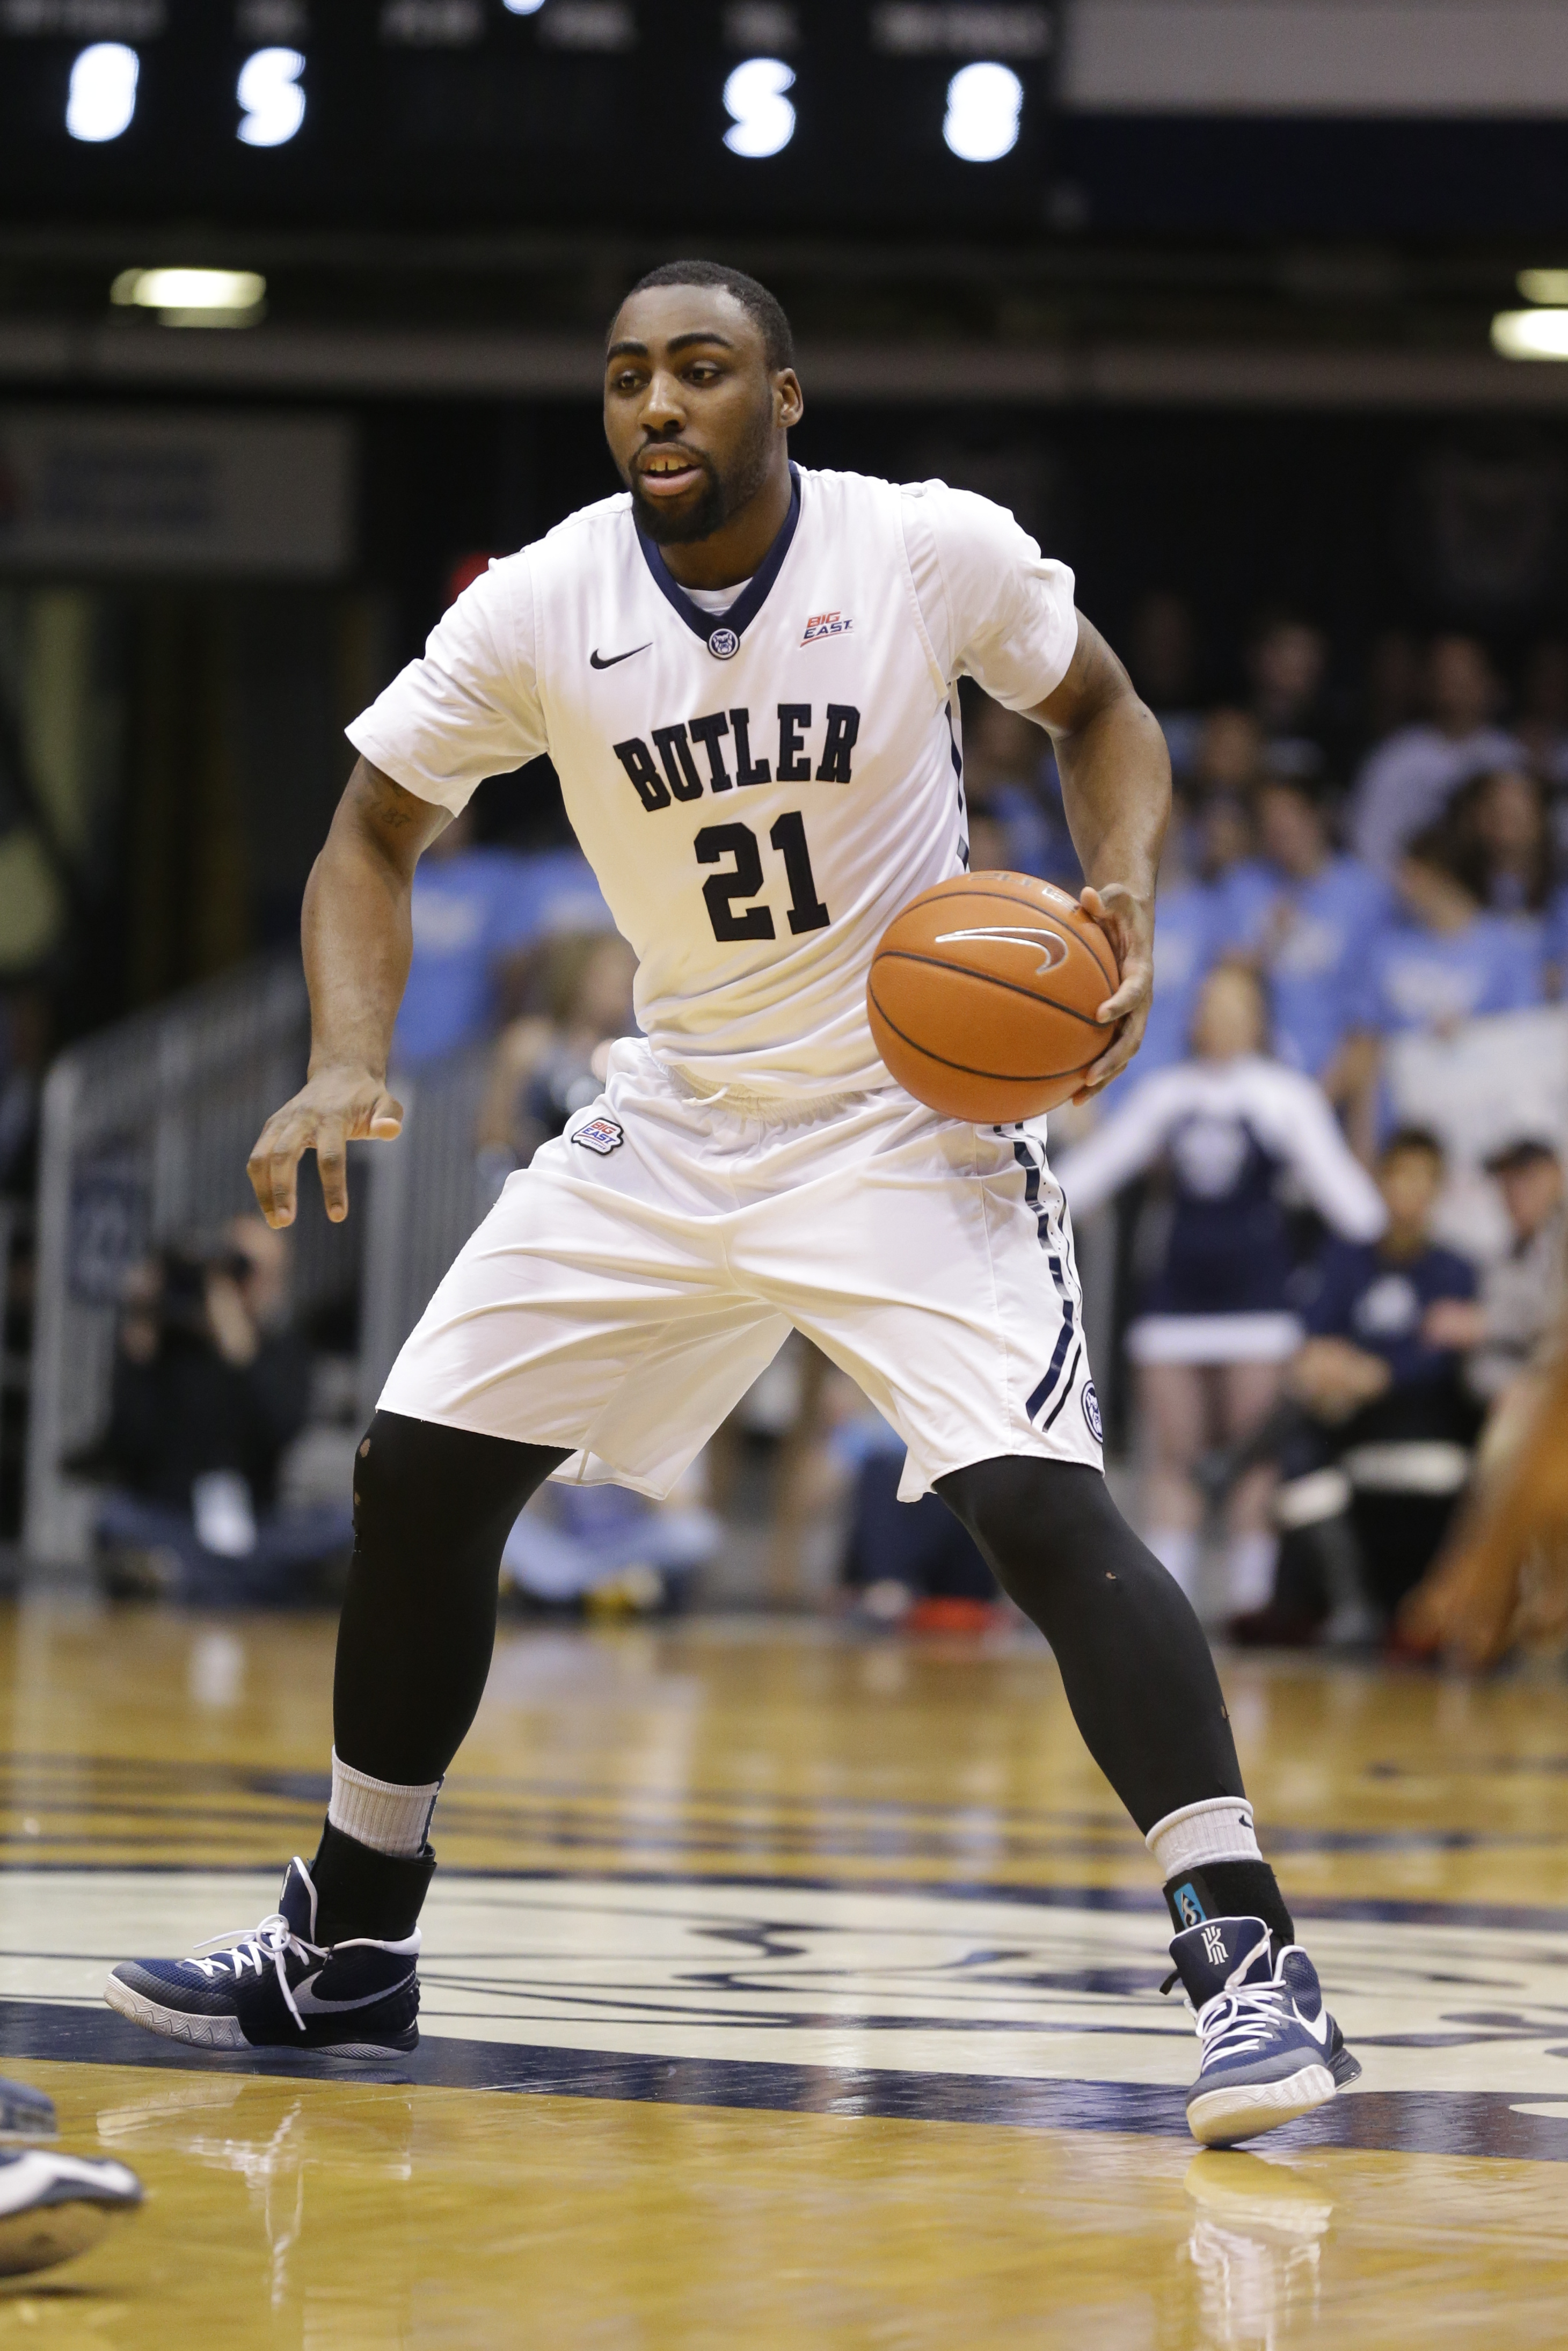 FILE - In this March 3, 2015,  file photo,  Butler forward Roosevelt Jones (21) plays in the first half of an NCAA college basketball game against Georgetown in Indianapolis, Tuesday. Butler, ranked No. 24, faces Citadel to open the season on Saturday.  (